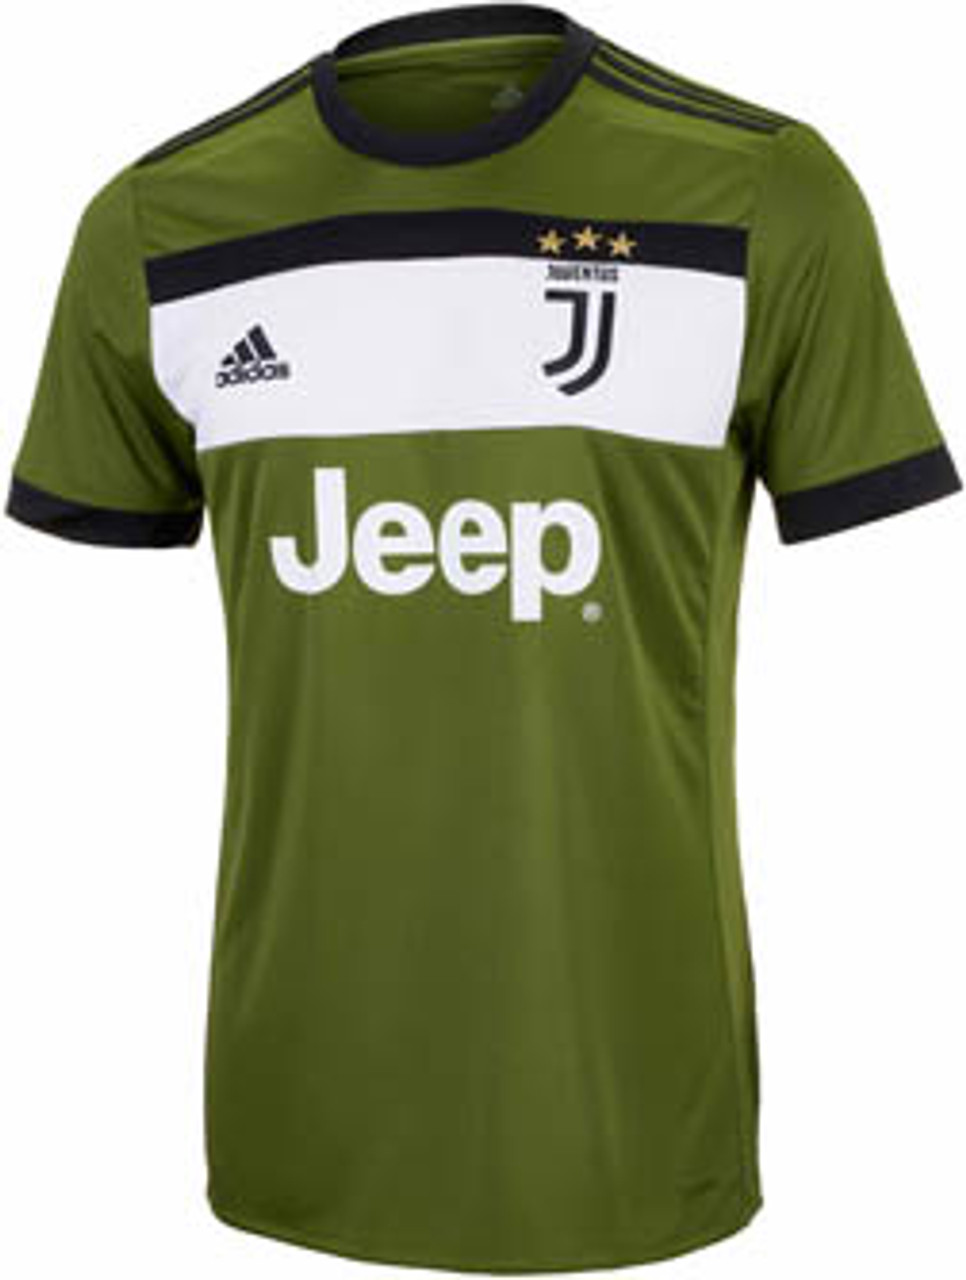 new product 70181 f66b3 ADIDAS JUVENTUS 2018 BOYS 3RD JERSEY